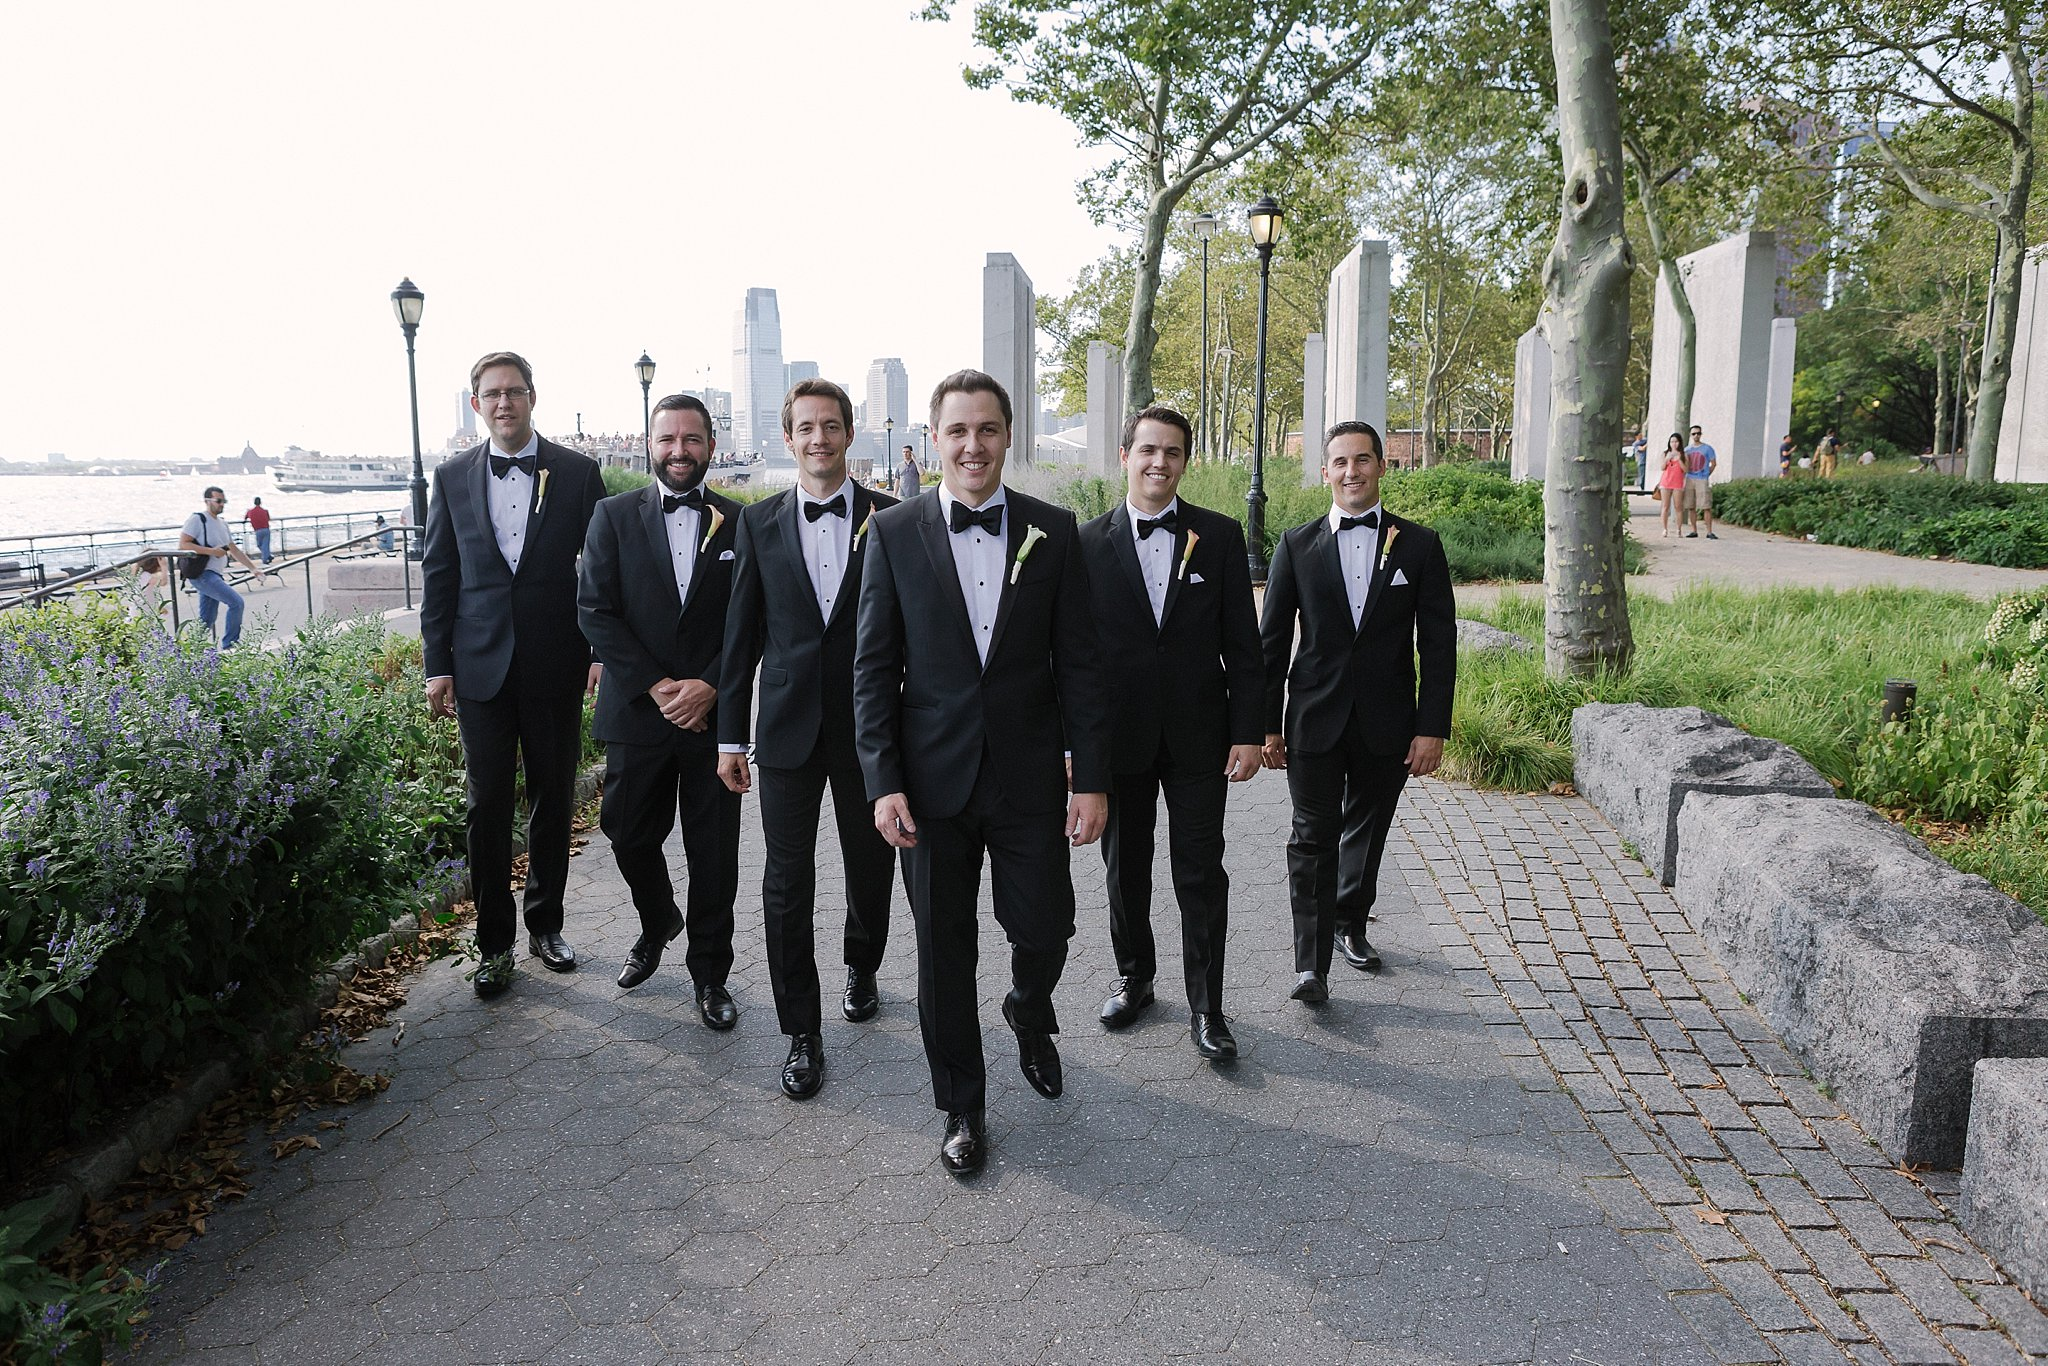 Groom and Groomsmen Portrait Shoot during Susan Shek Wedding Photography